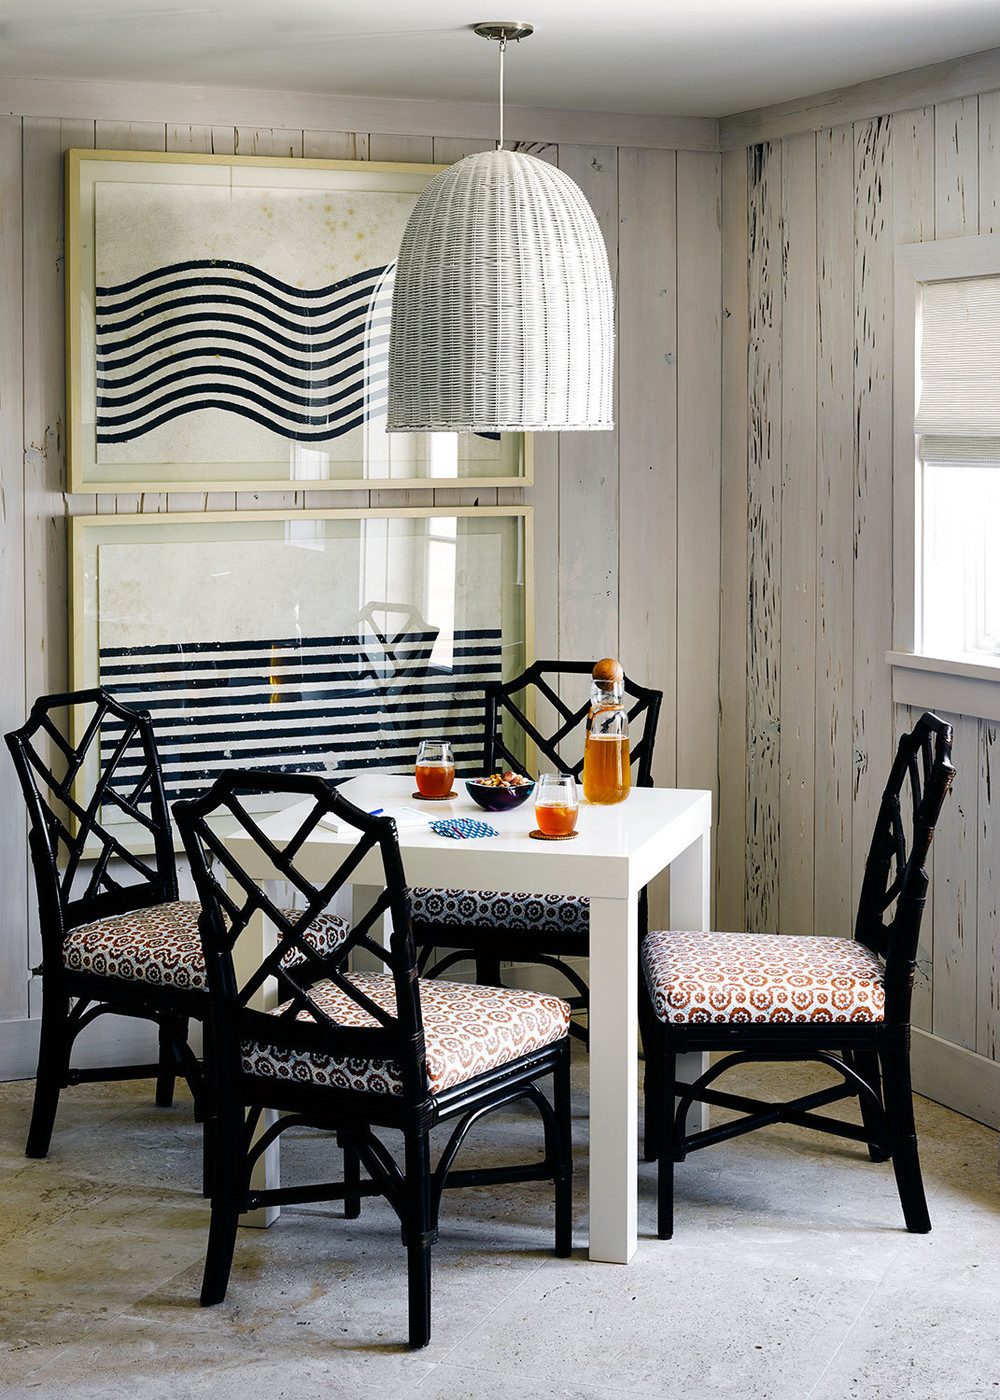 Woven lighting over a corner eating nook